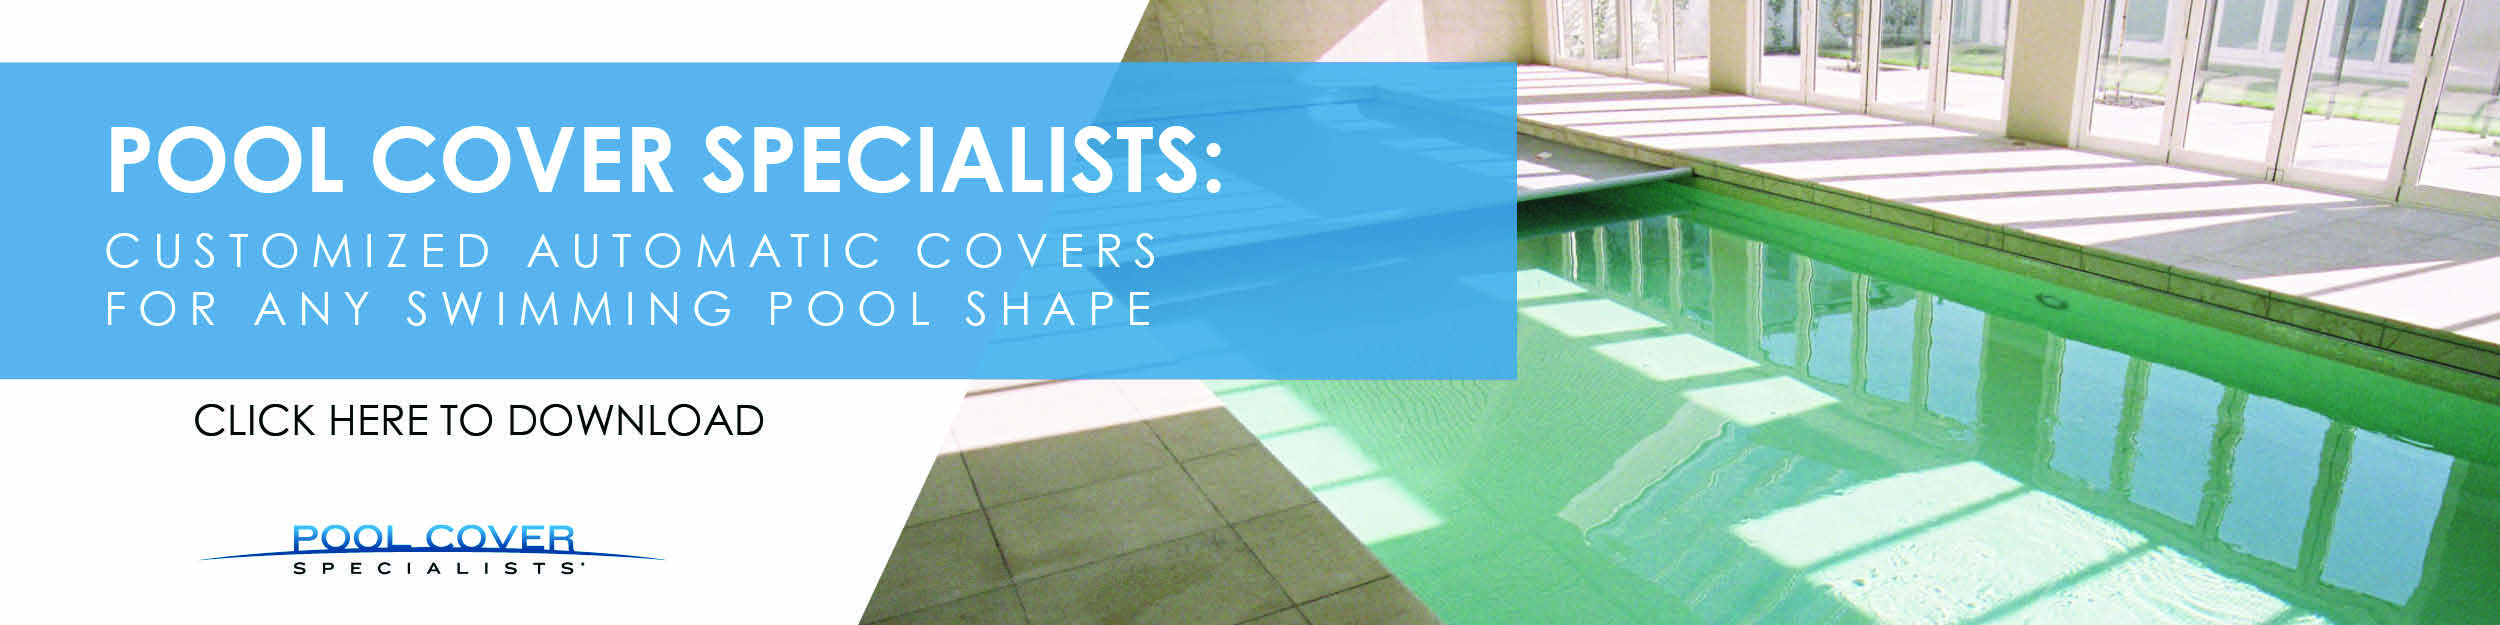 Customized_Automatic_Pool_Covers_For_Any_Shape_of_Swimming_Pool.jpg